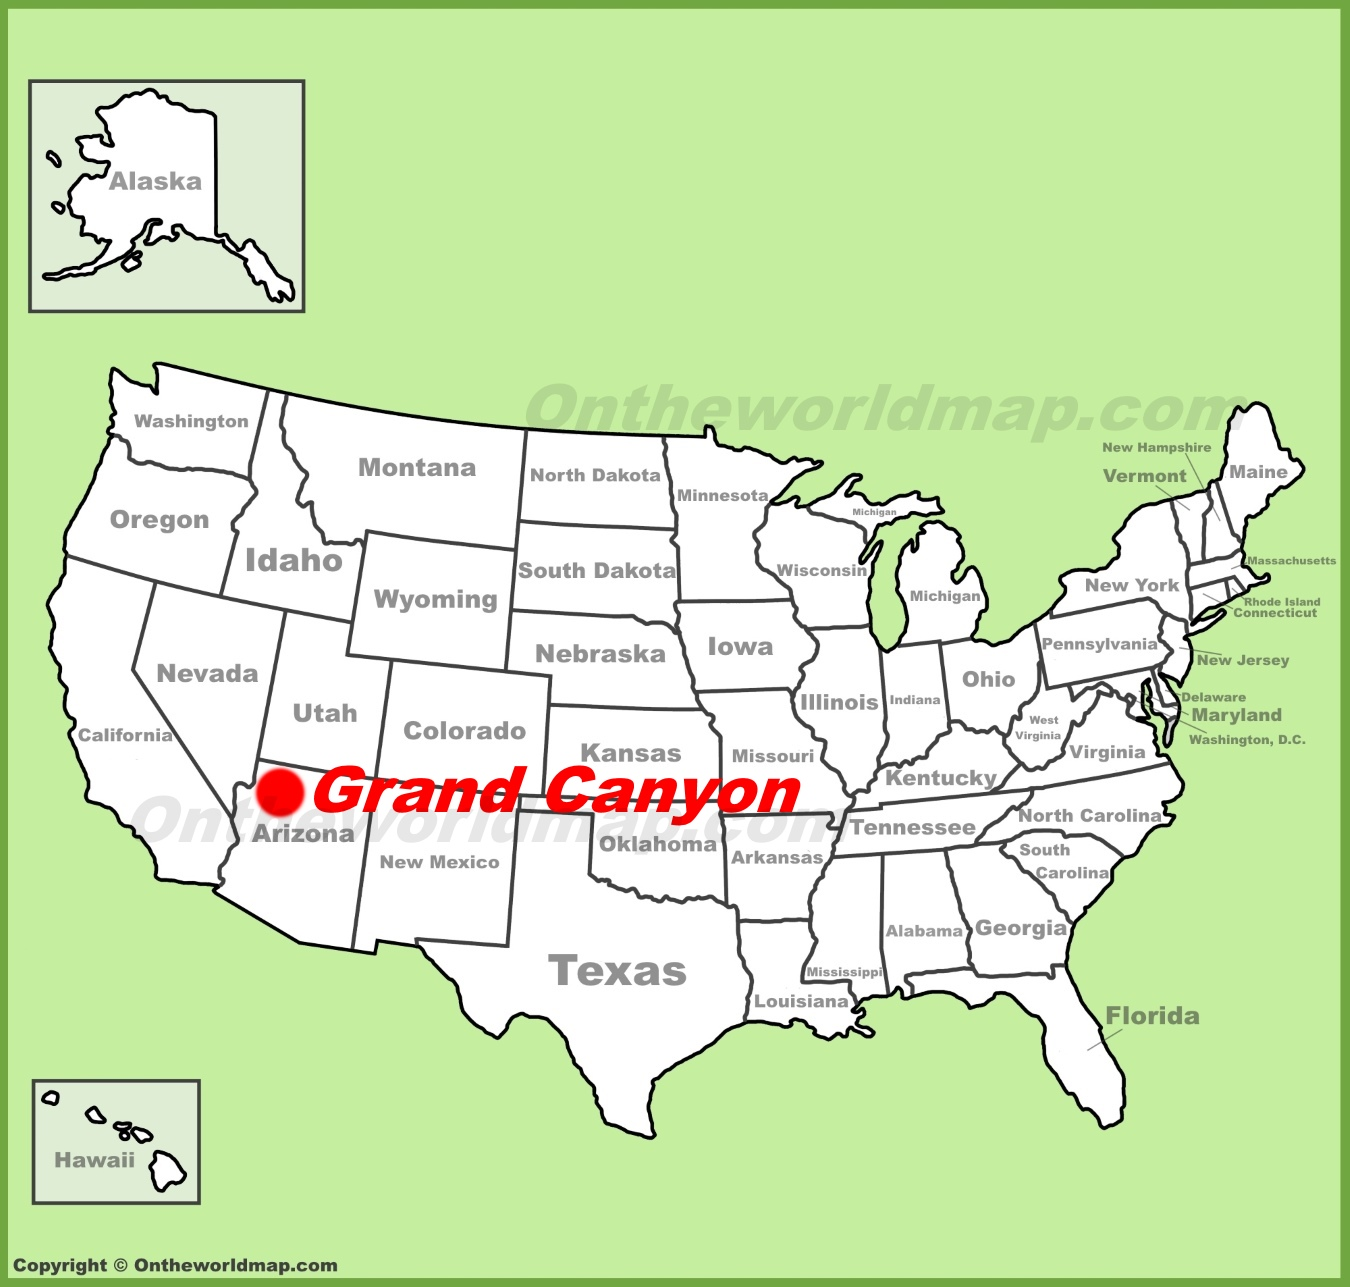 Grand Canyon Maps Usa Maps Of Grand Canyon National Park - Grand-canyon-on-a-us-map